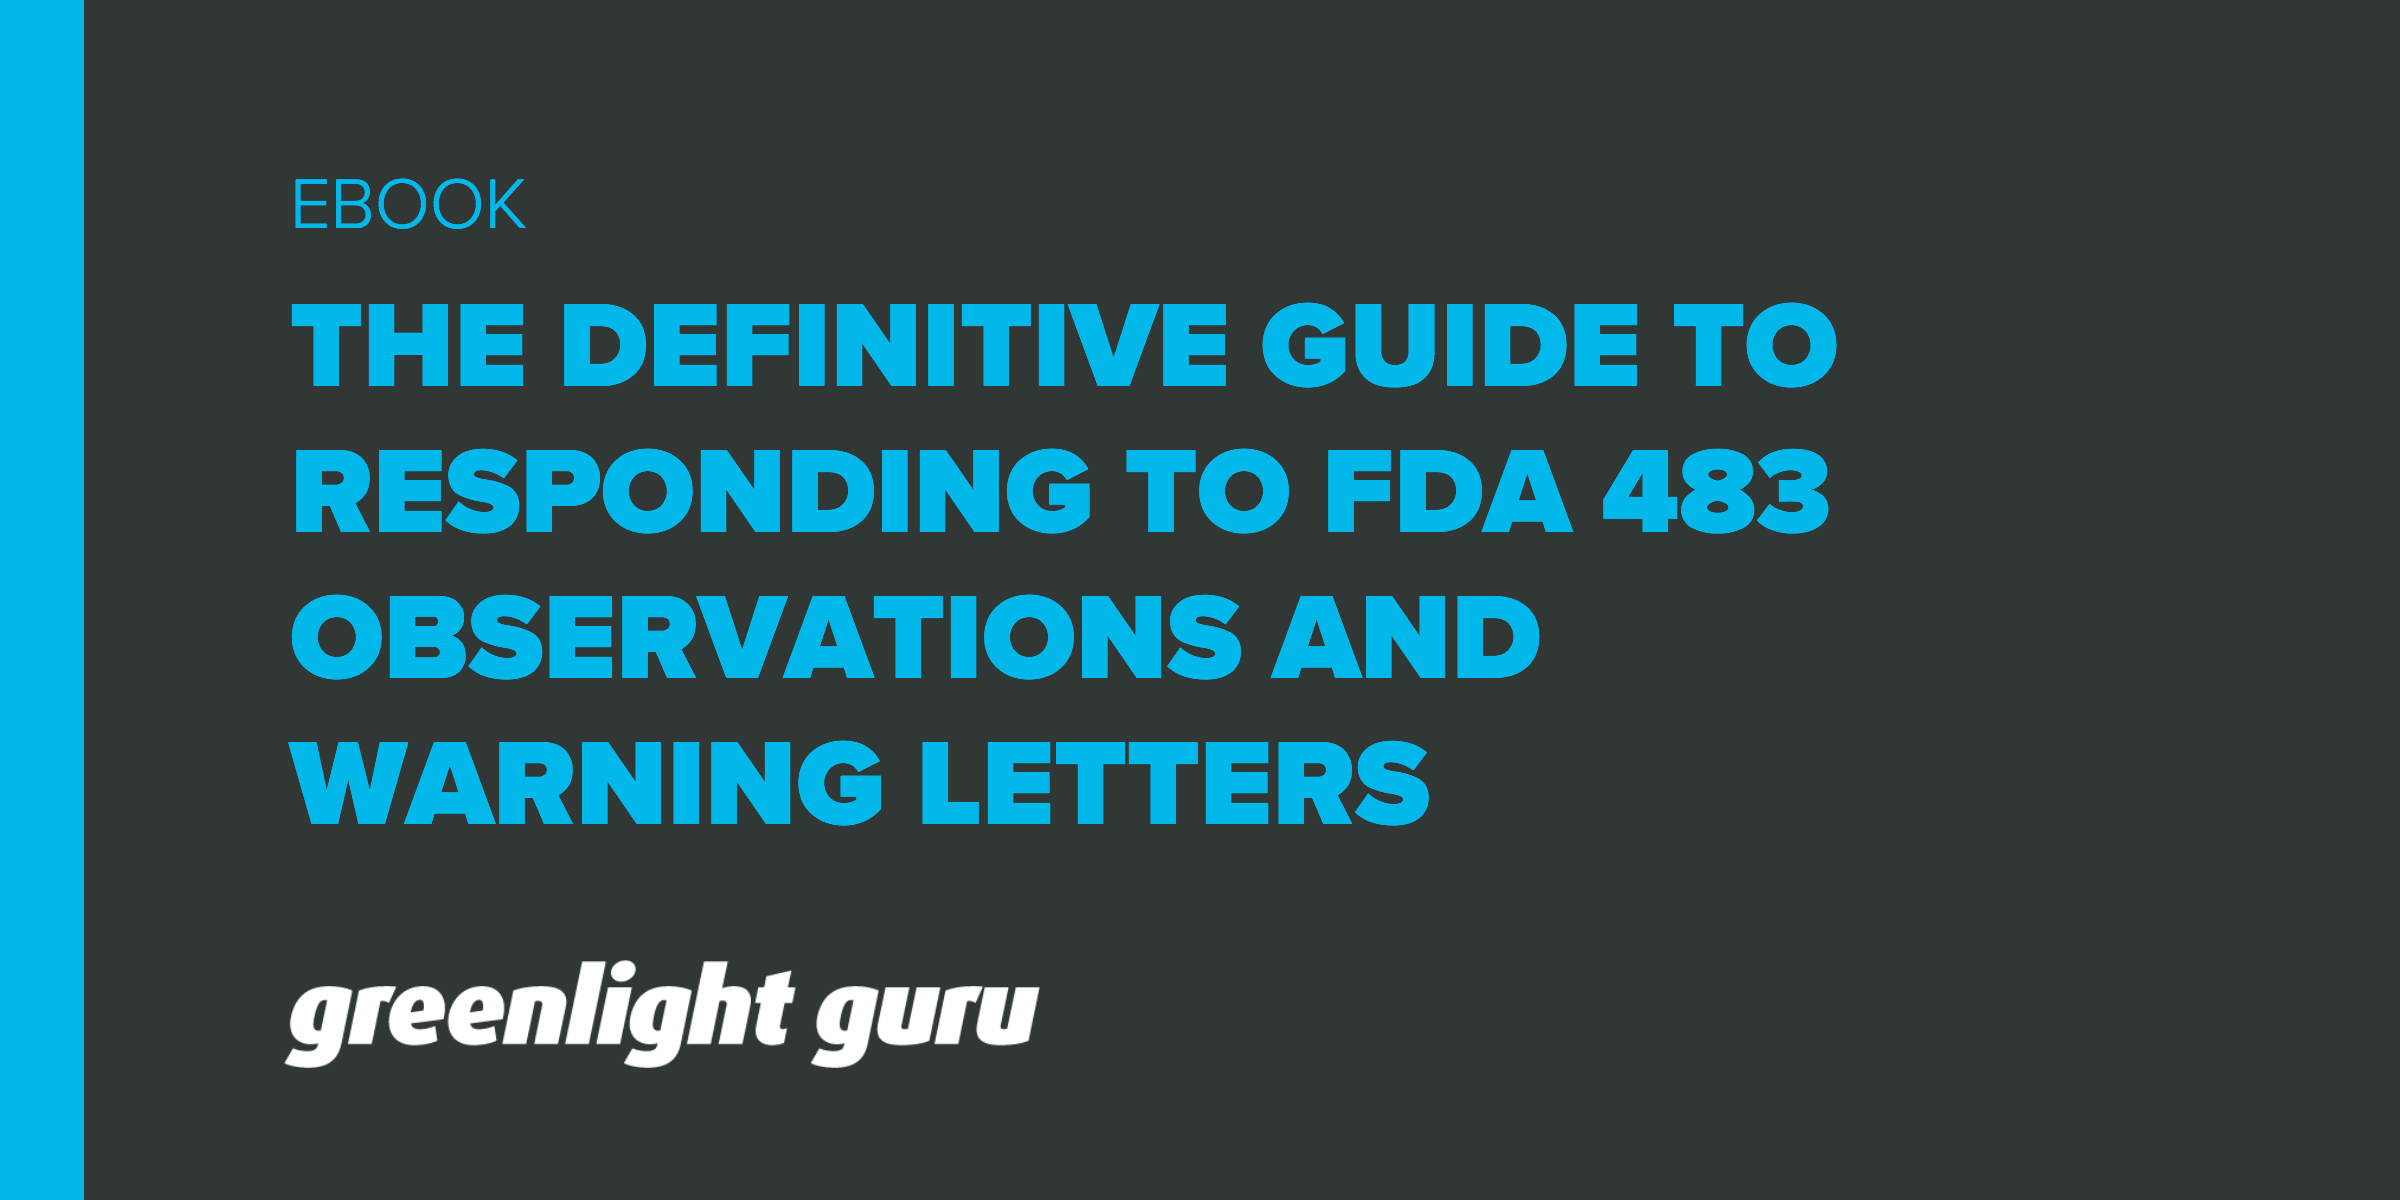 The Definitive Guide to Responding to FDA 483 Observations and Warning Letters - Featured Image